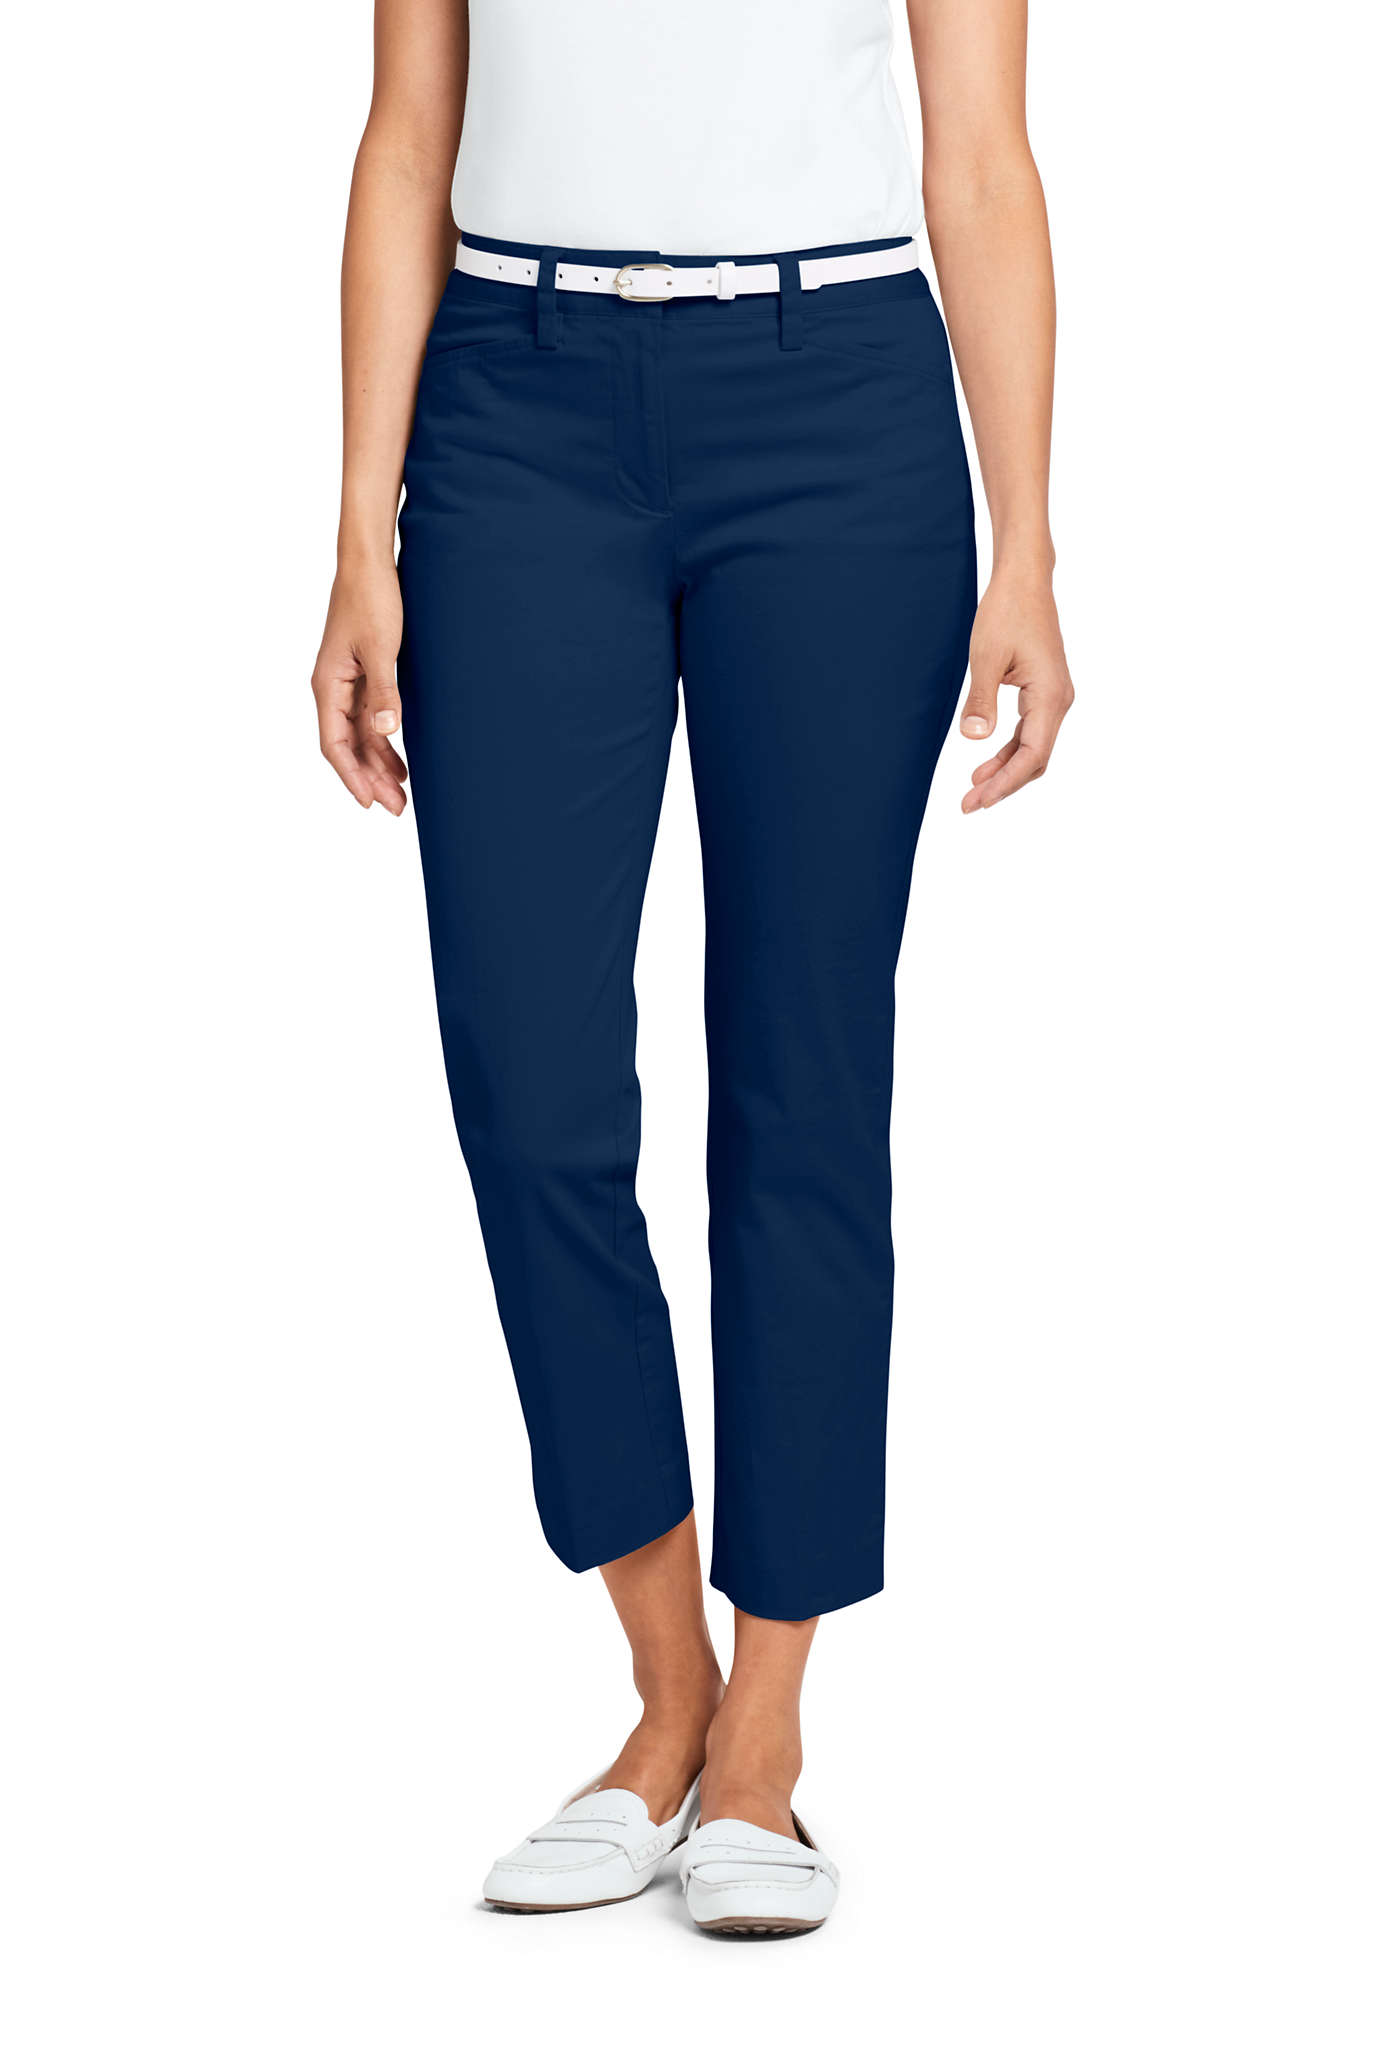 18e7da4690d2d Women s Capris   Crop Pants